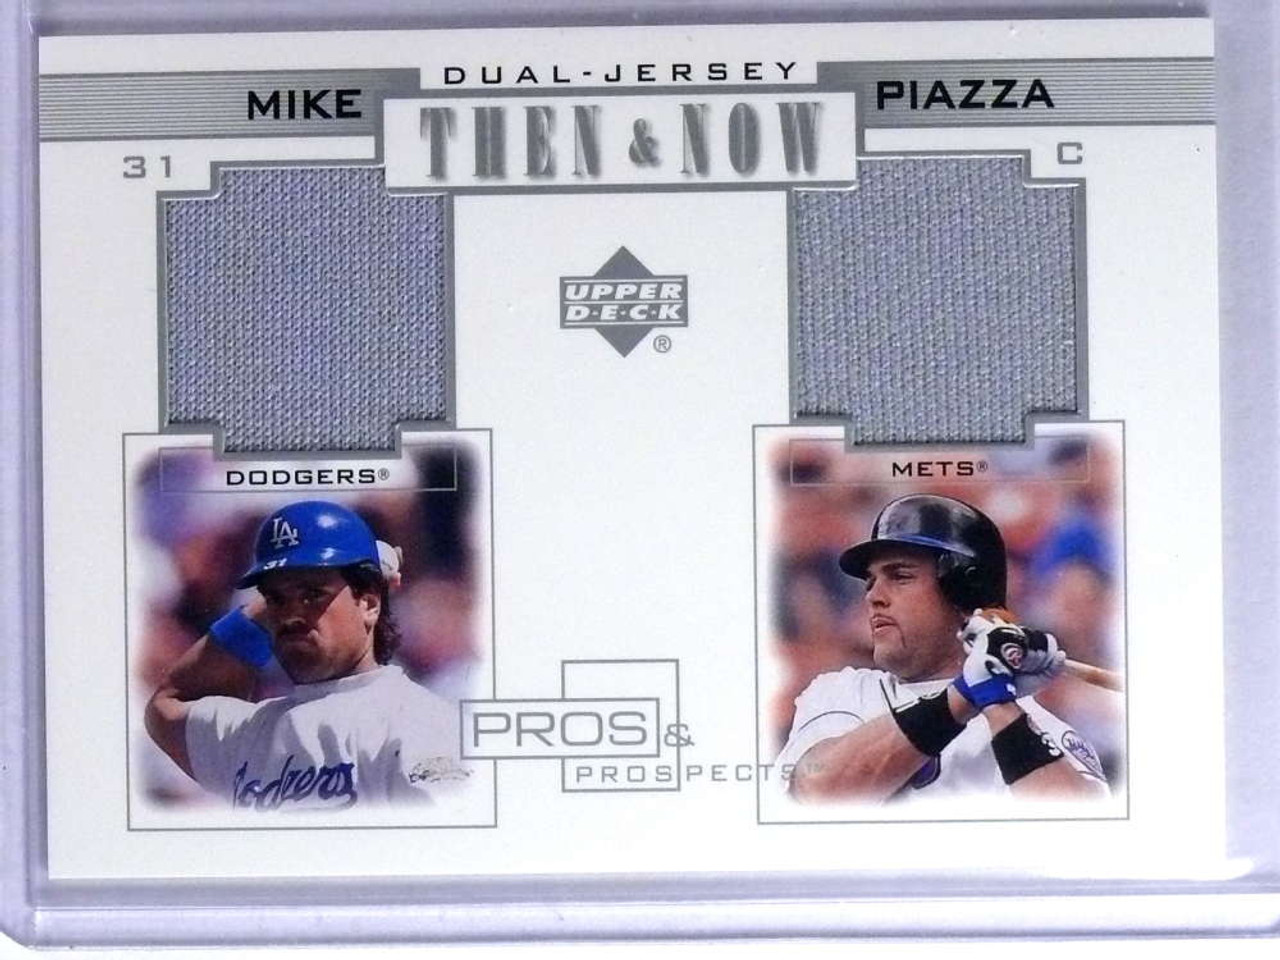 2001 Upper Deck Pros Prospects Then Now Mike Piazza Dual Jersey Tnmp 75723